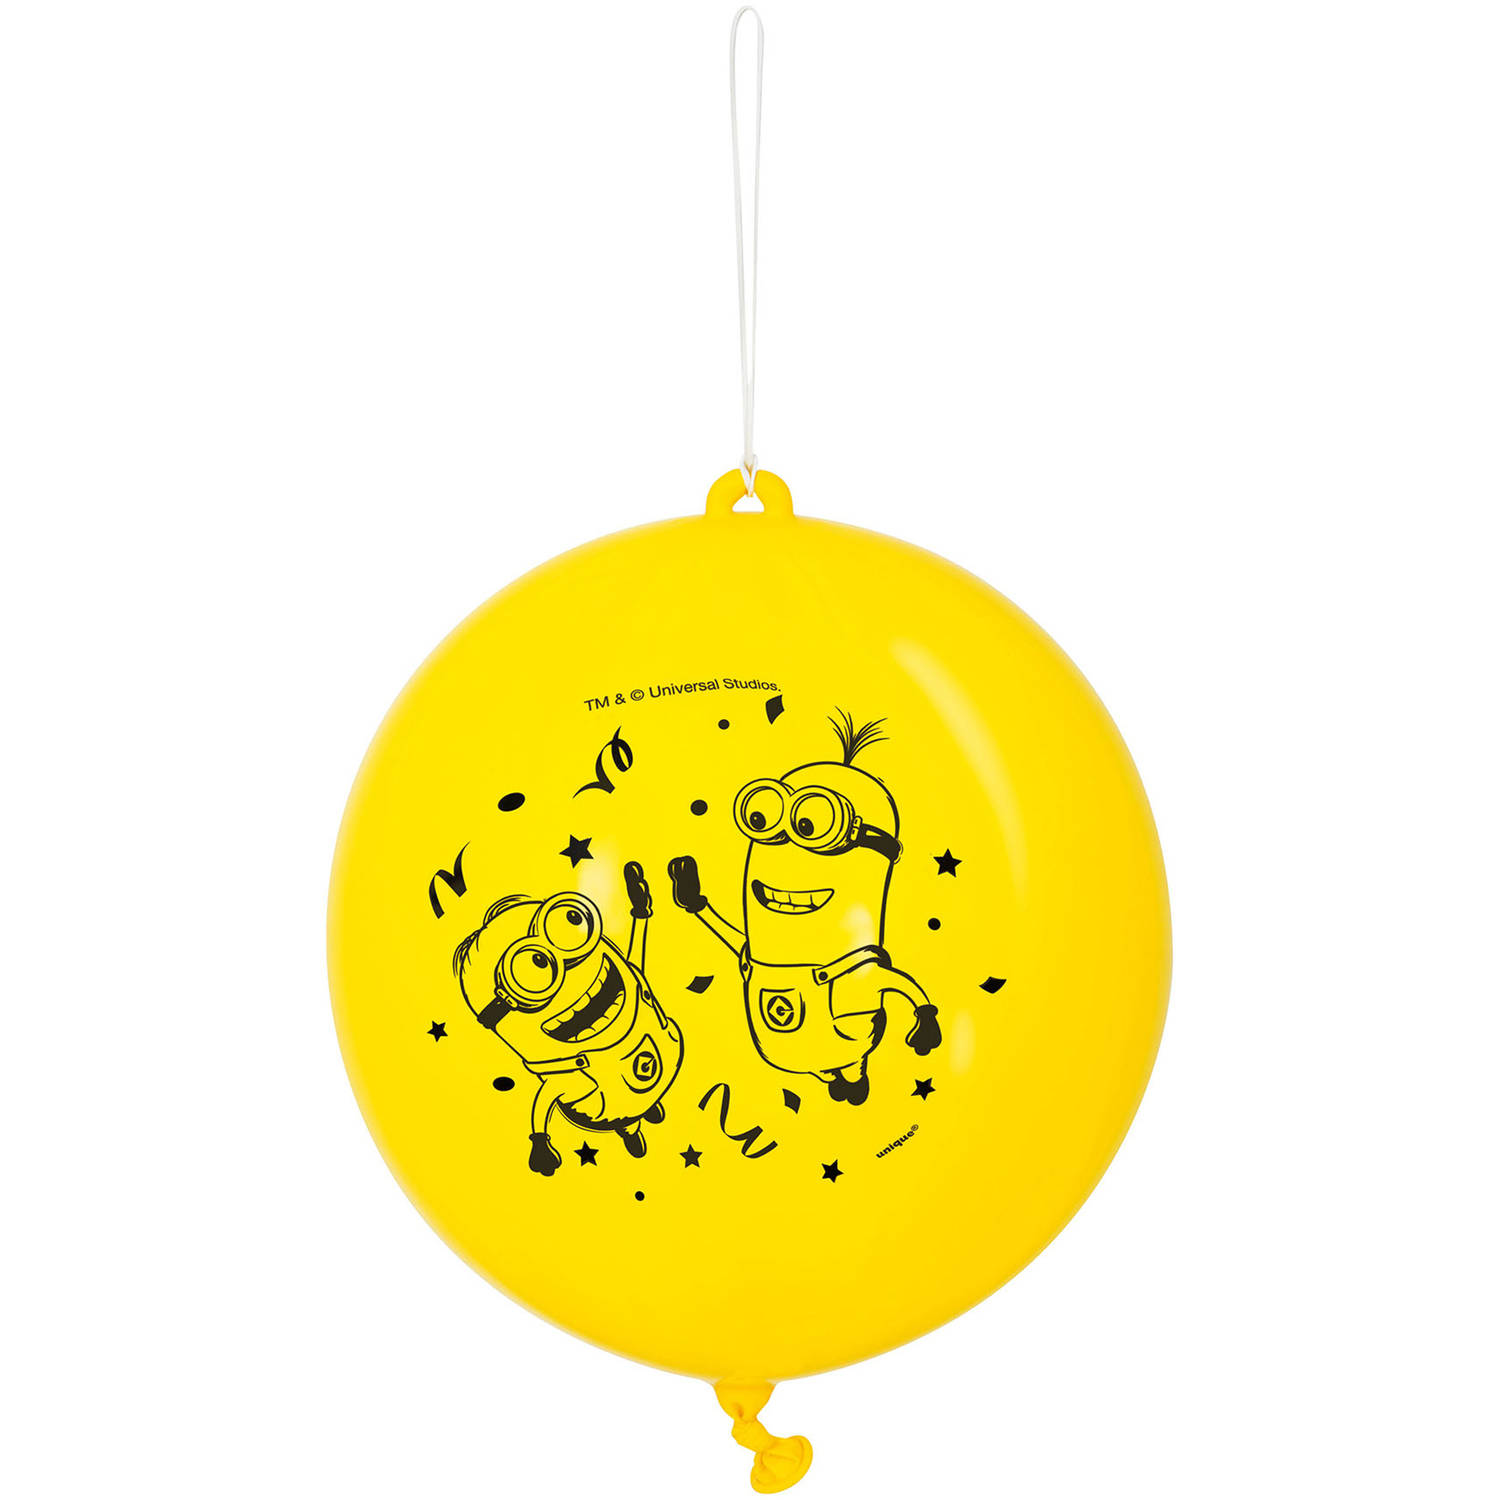 Despicable Me Minions Punch Ball Balloons, 16 in, Yellow, 2ct